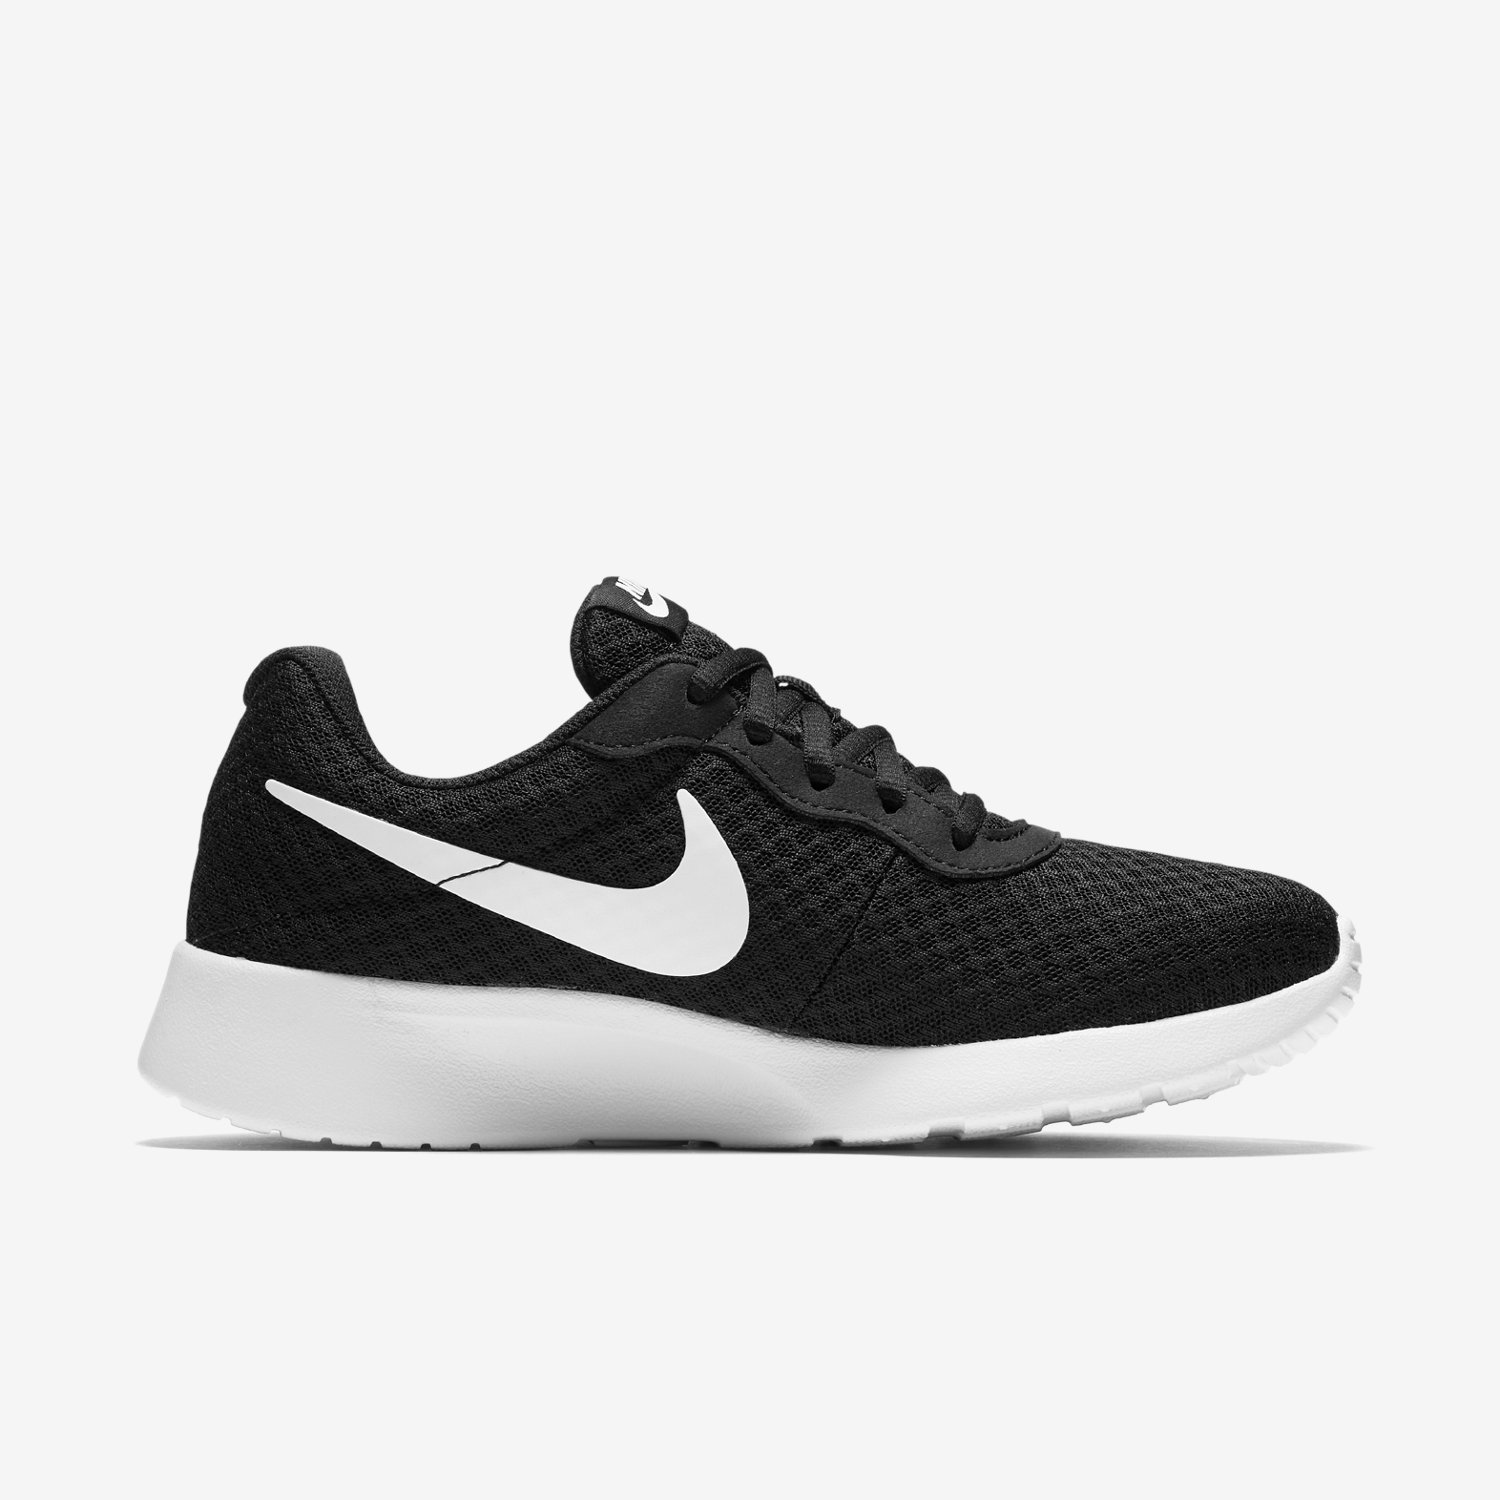 Nike Shoes Pics Download